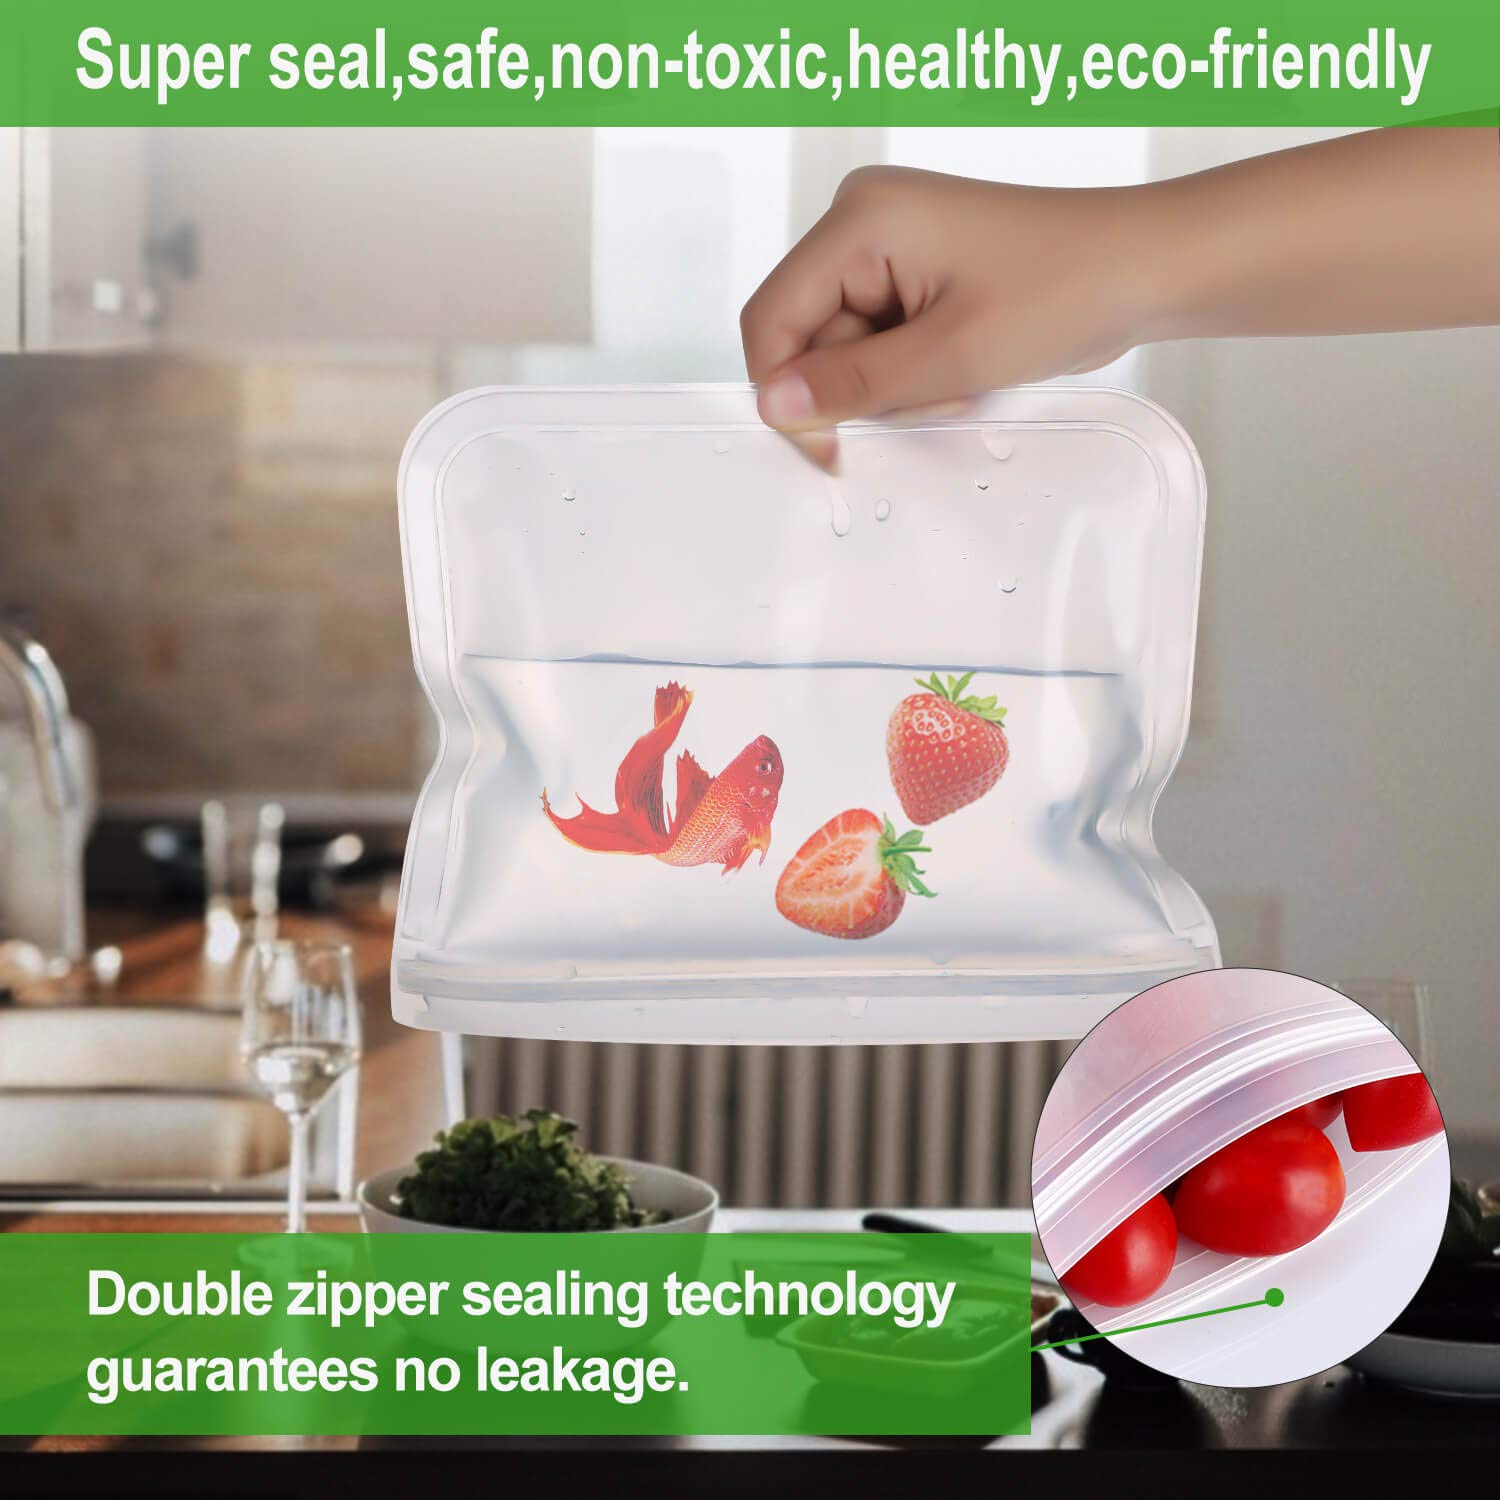 Reusable Storage Bags for Food - 12Pack Leakproof Freezer Safe Bag (6 Reusable Sandwich Bags & 6 Reusable Kids Snack Bag), BPA Free Ziplock Lunch Bag for Travel Home Organization